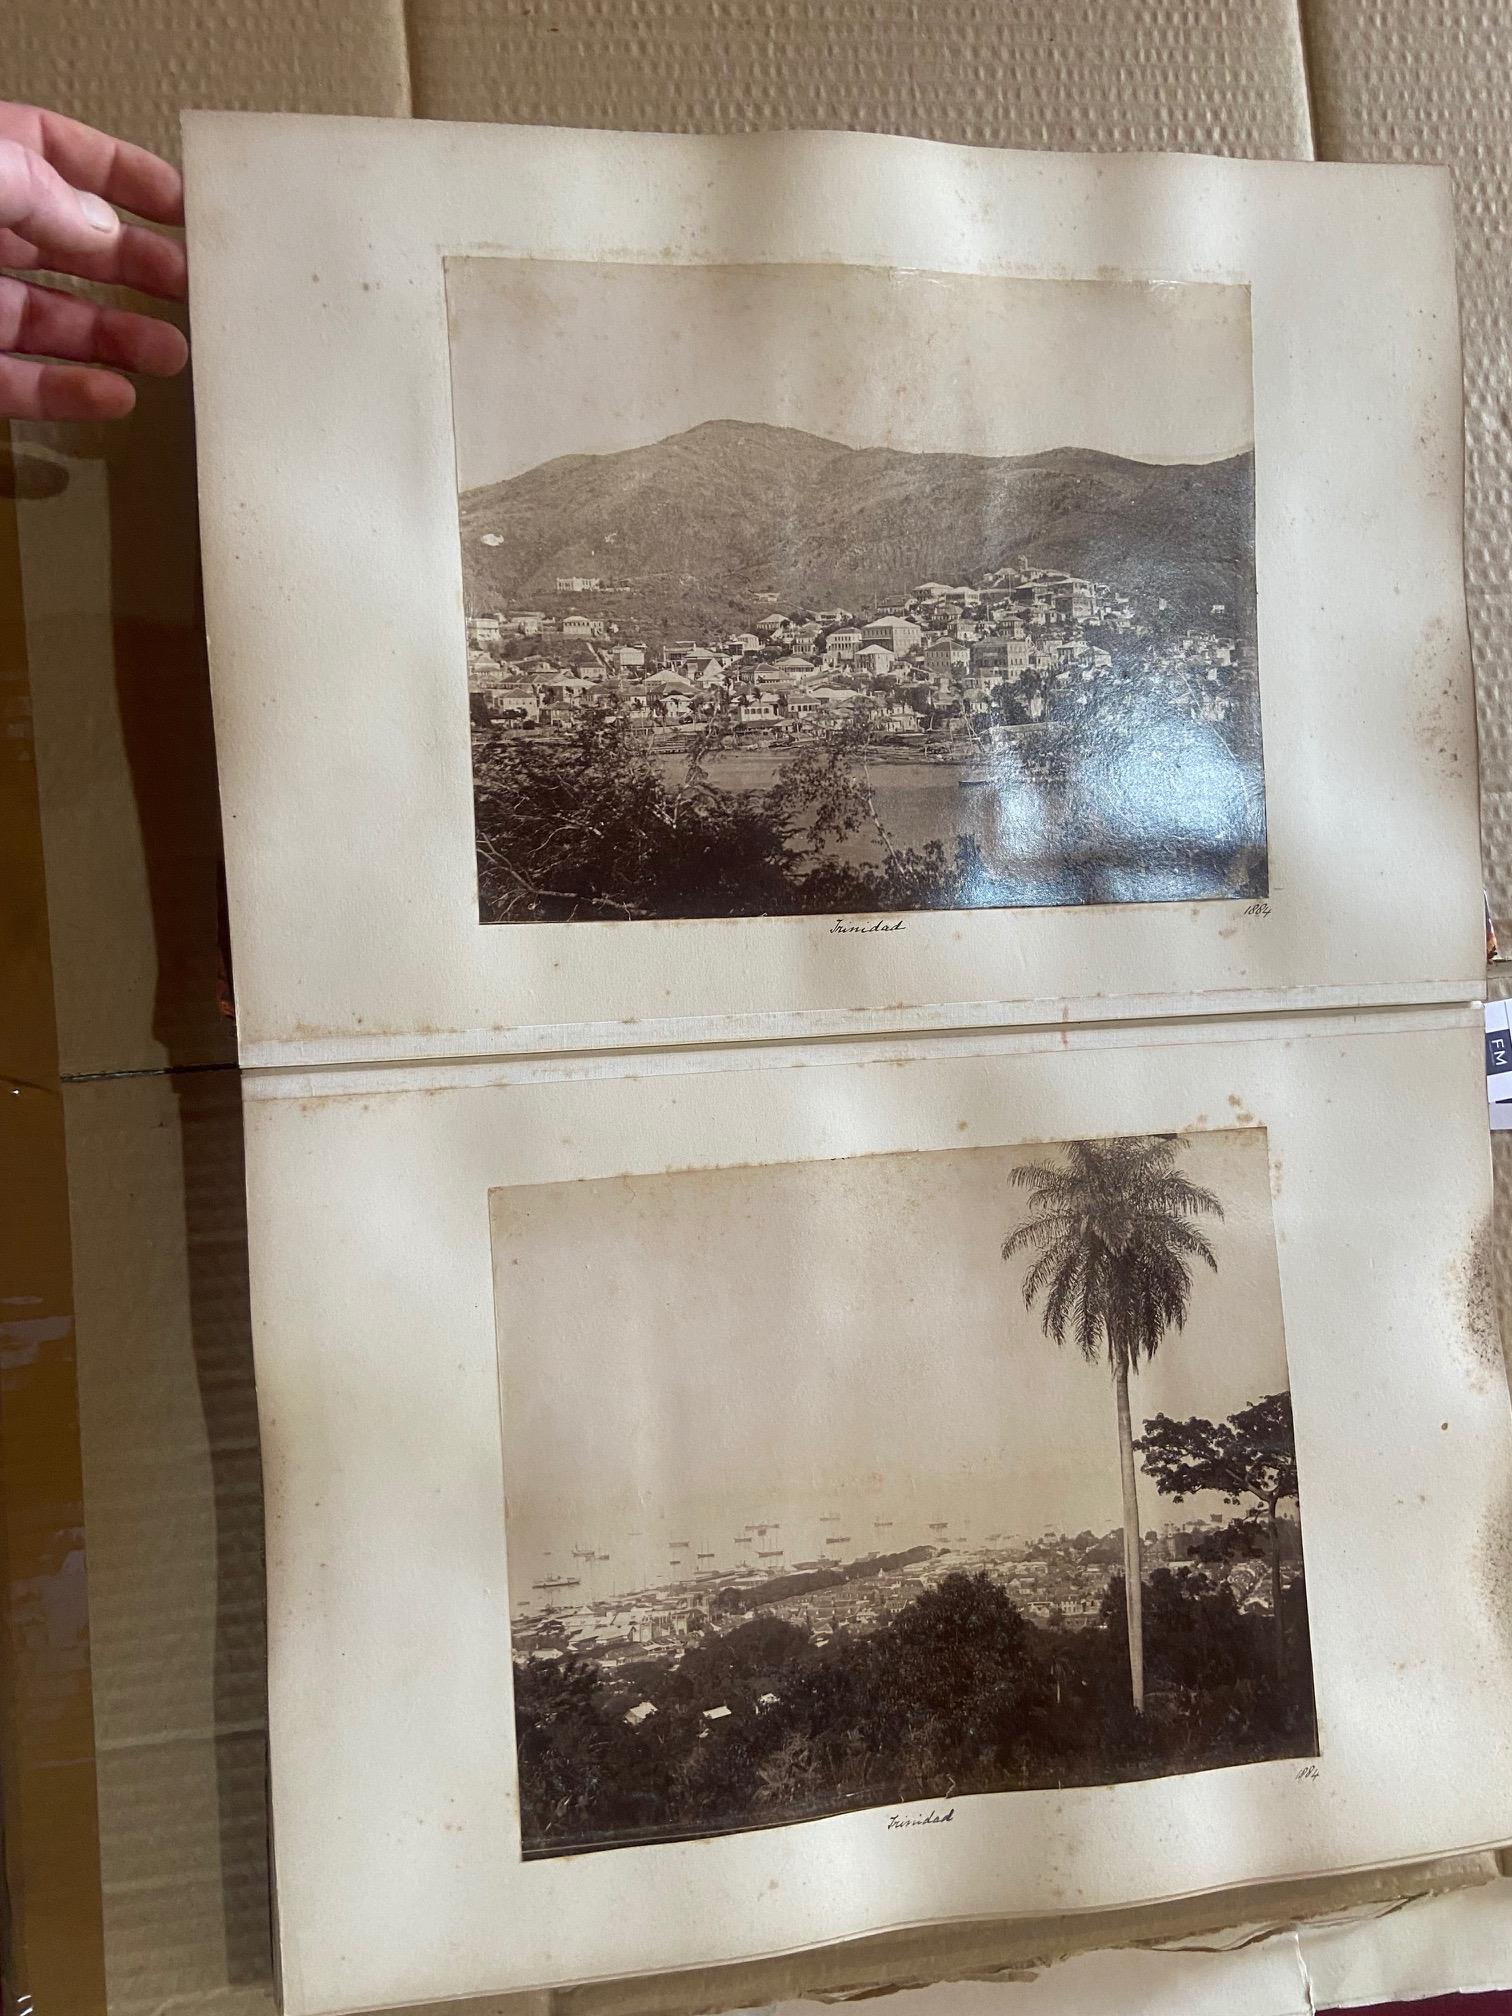 Photographs: Two large folio Albums of Photographs, each c. 1870 - 1890's. One Album contains - Image 25 of 31